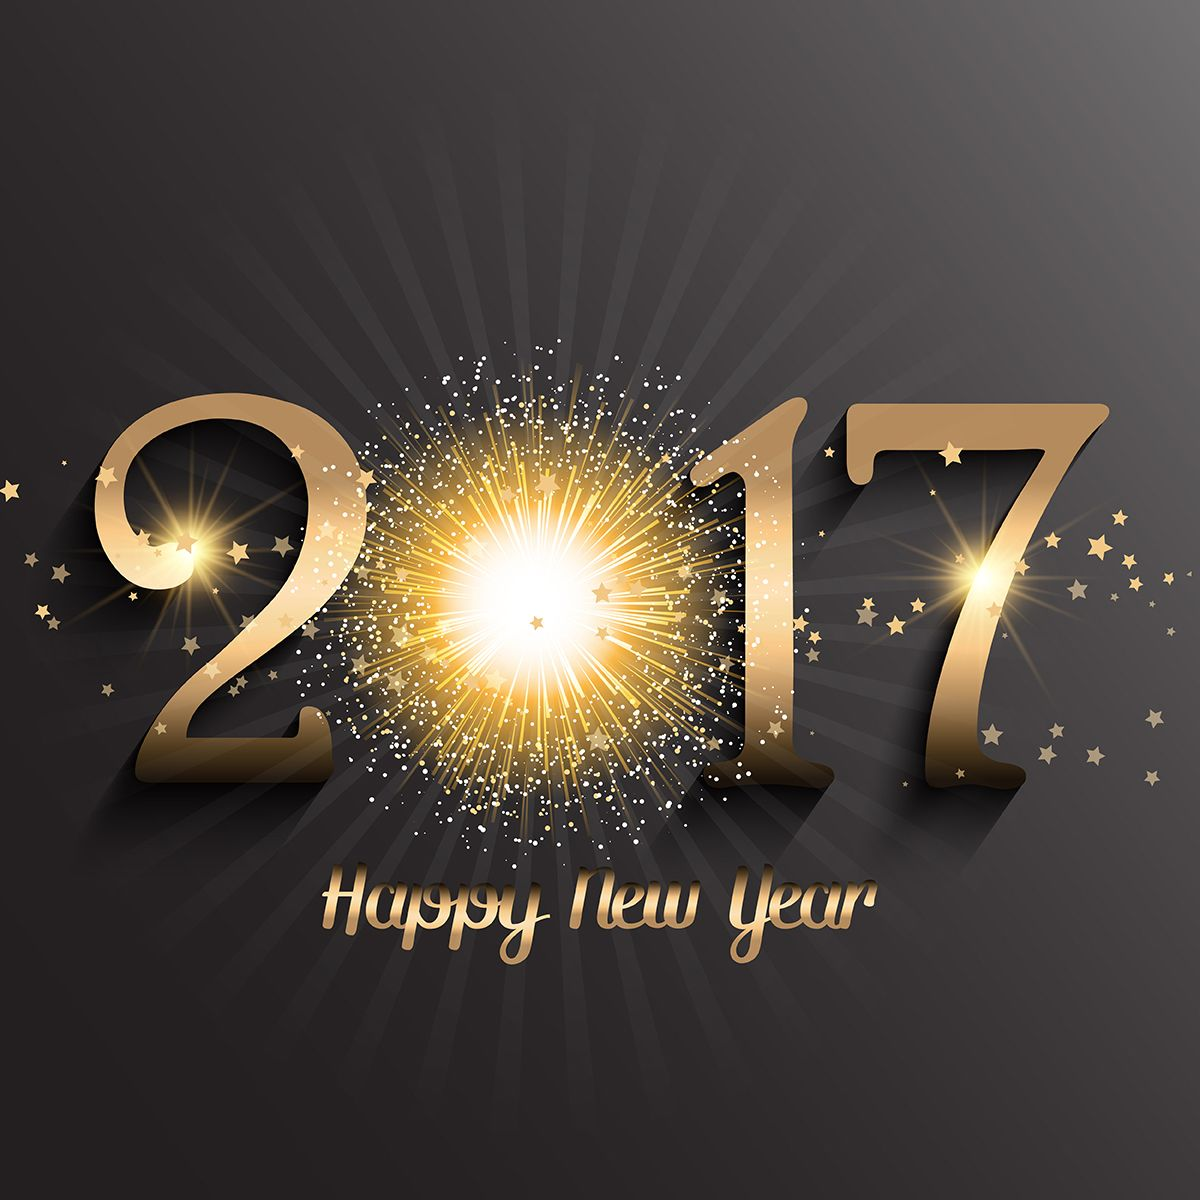 {TOP} Happy New Year 2017 HD Wallpaper Images Download